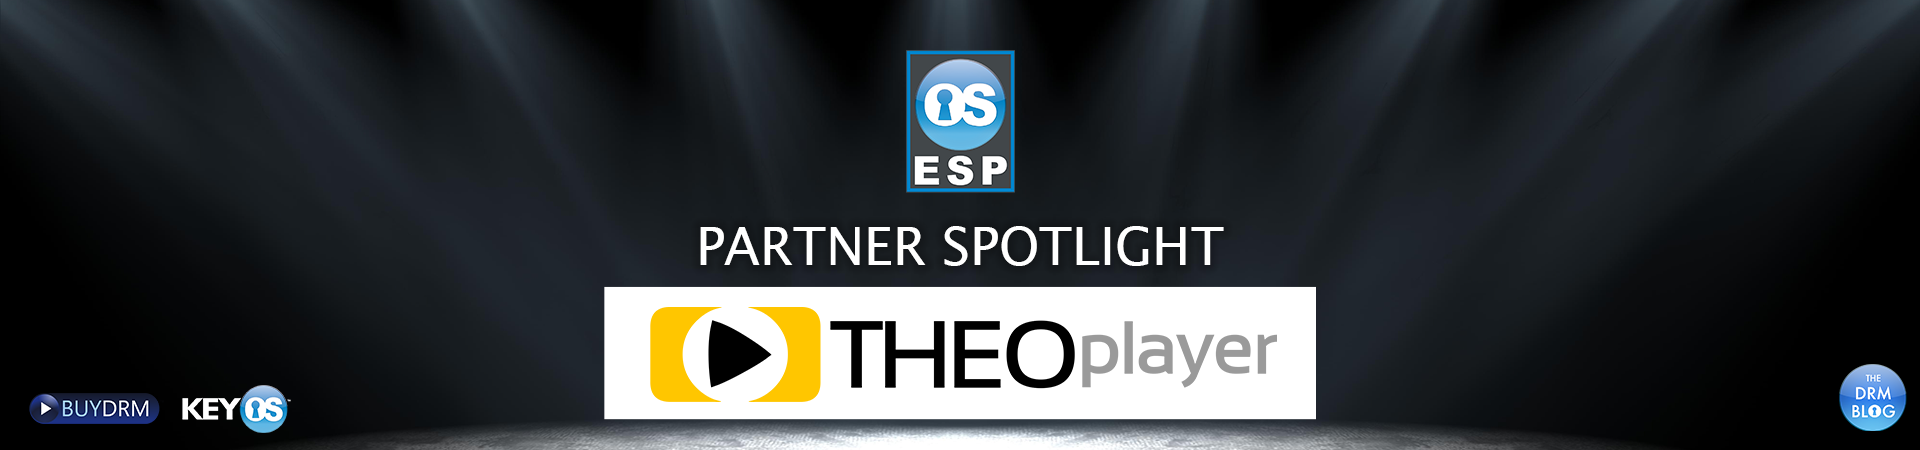 ESPPartnerSpotlight_THEOPlayer_Desktop_1920x450